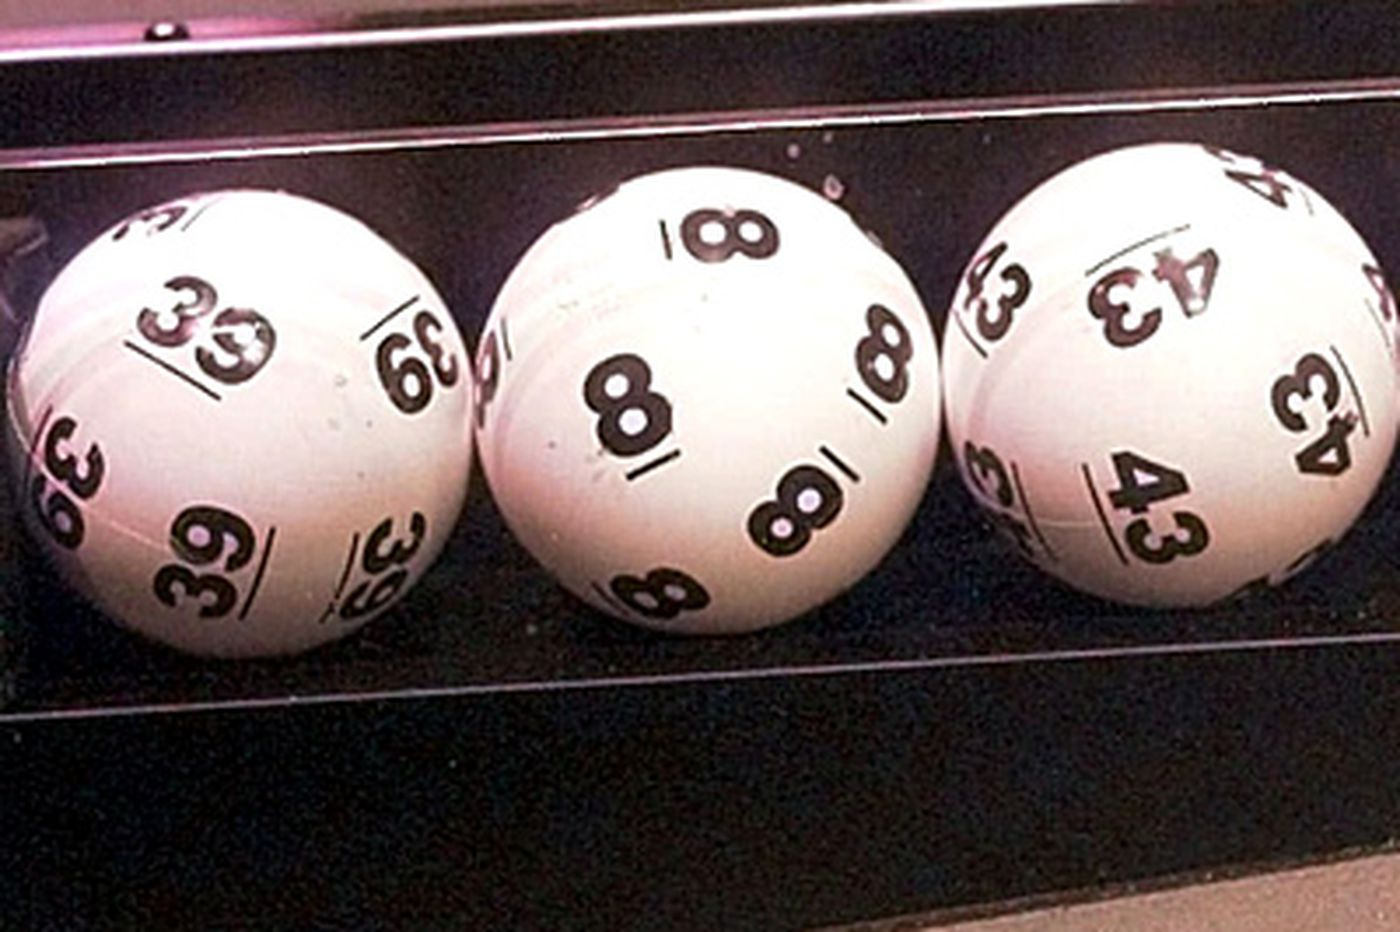 Tonight's Powerball jackpot 2d biggest in 2 years